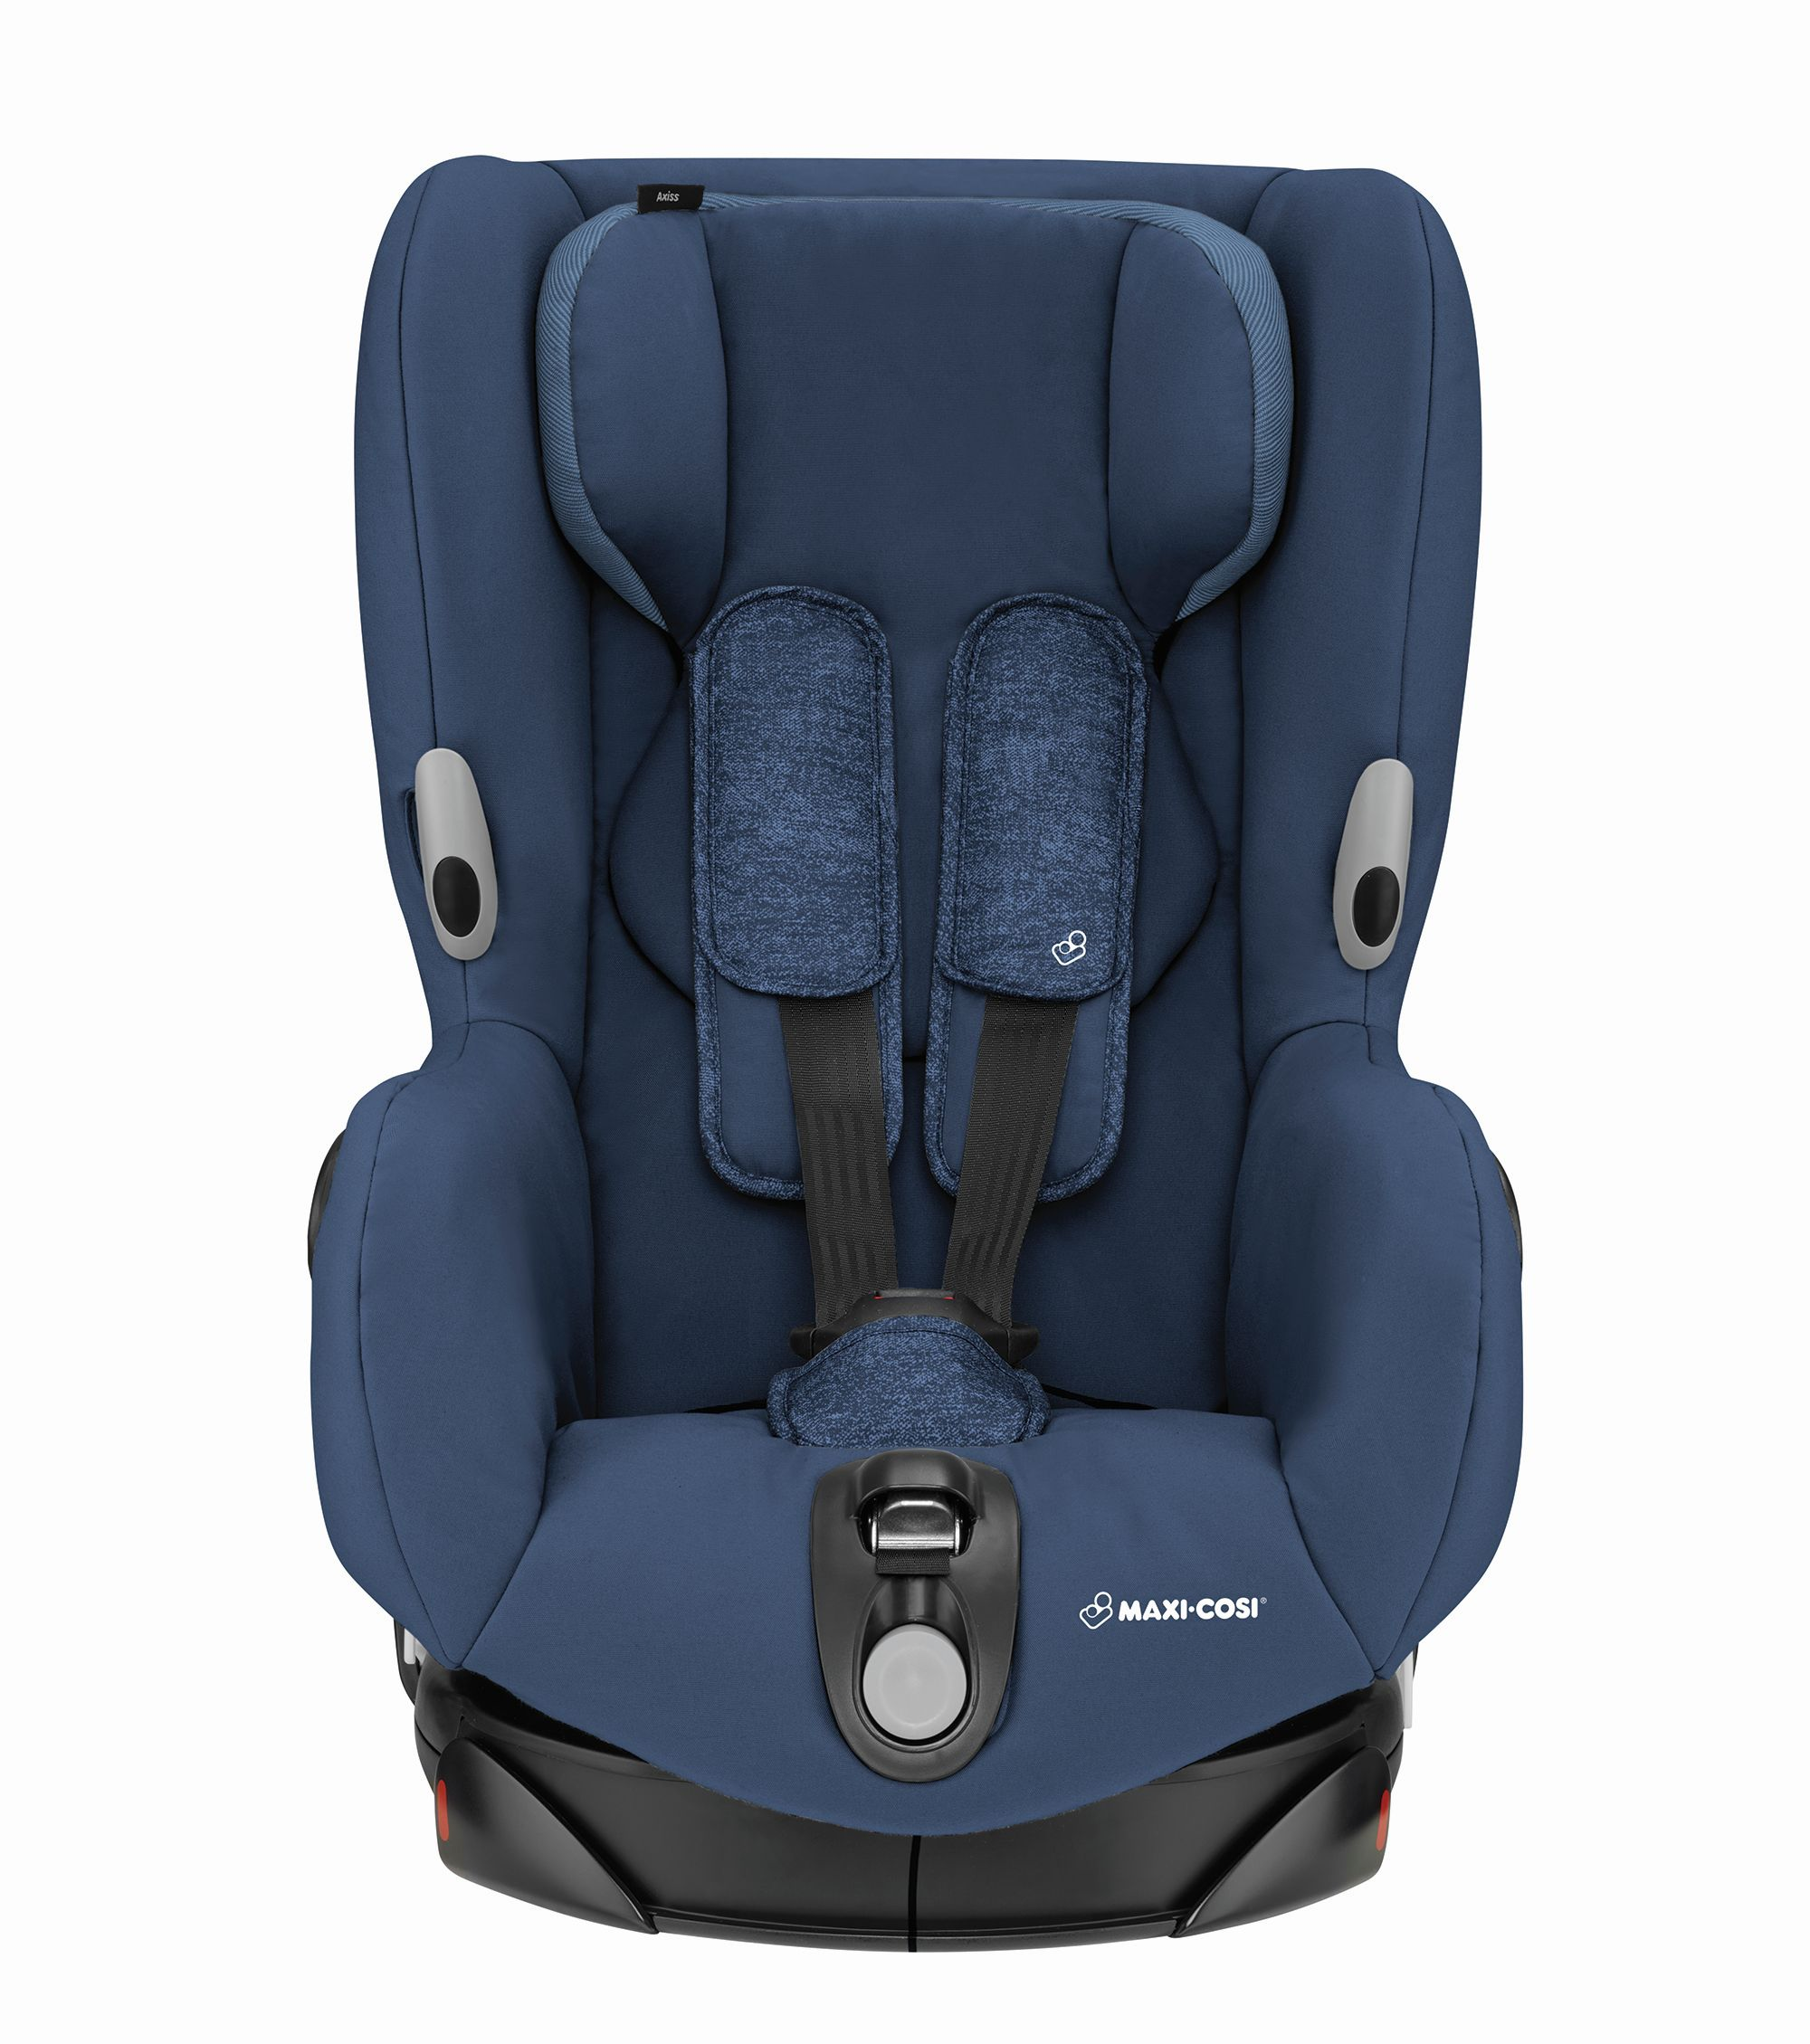 maxi cosi child car seat axiss 2018 nomad blue buy at kidsroom car seats. Black Bedroom Furniture Sets. Home Design Ideas